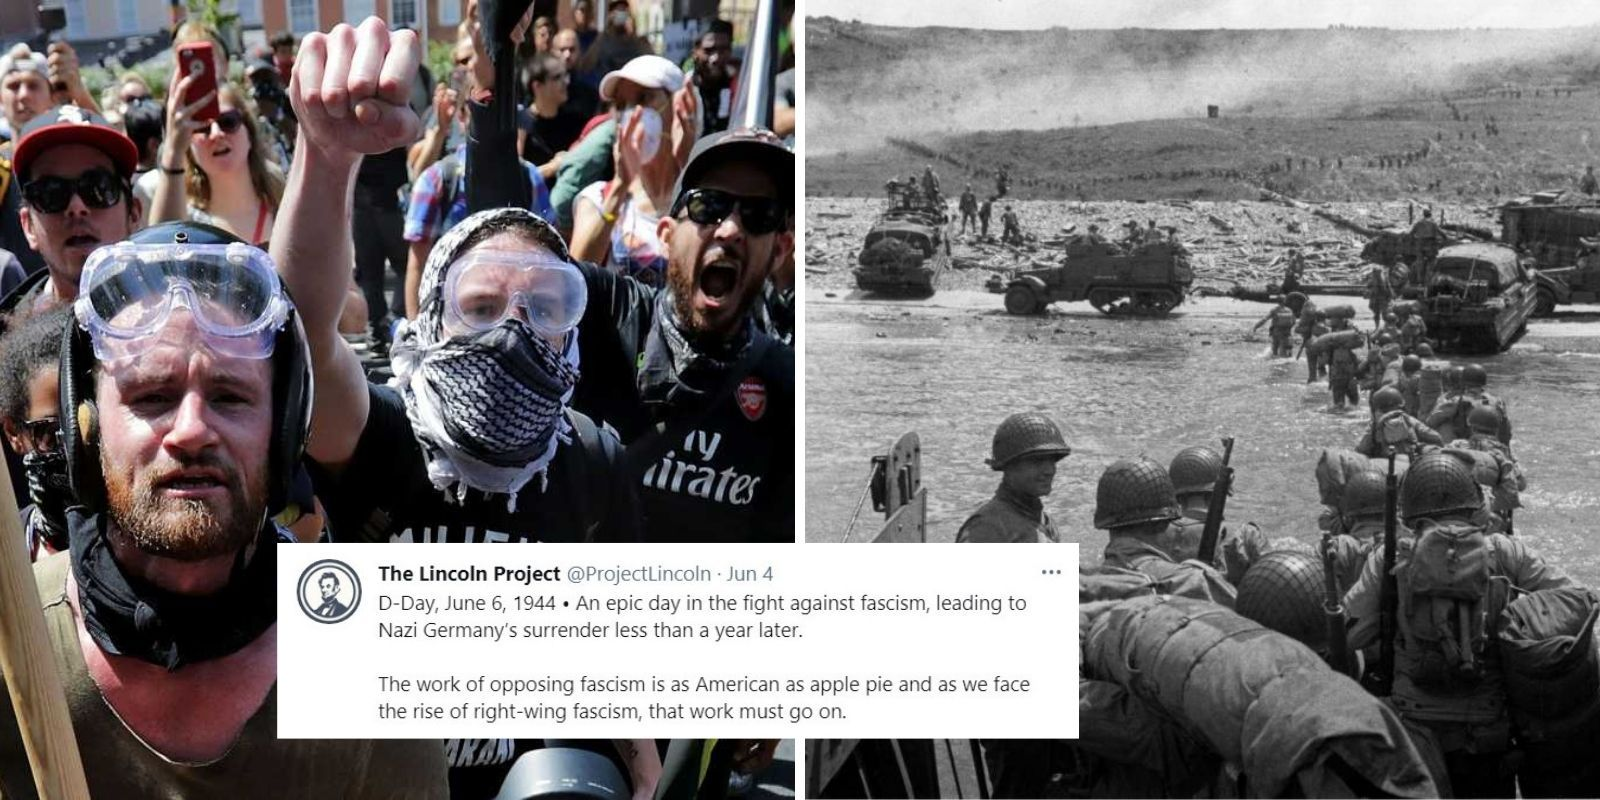 Lincoln Project compares Antifa terrorists to D-Day heroes